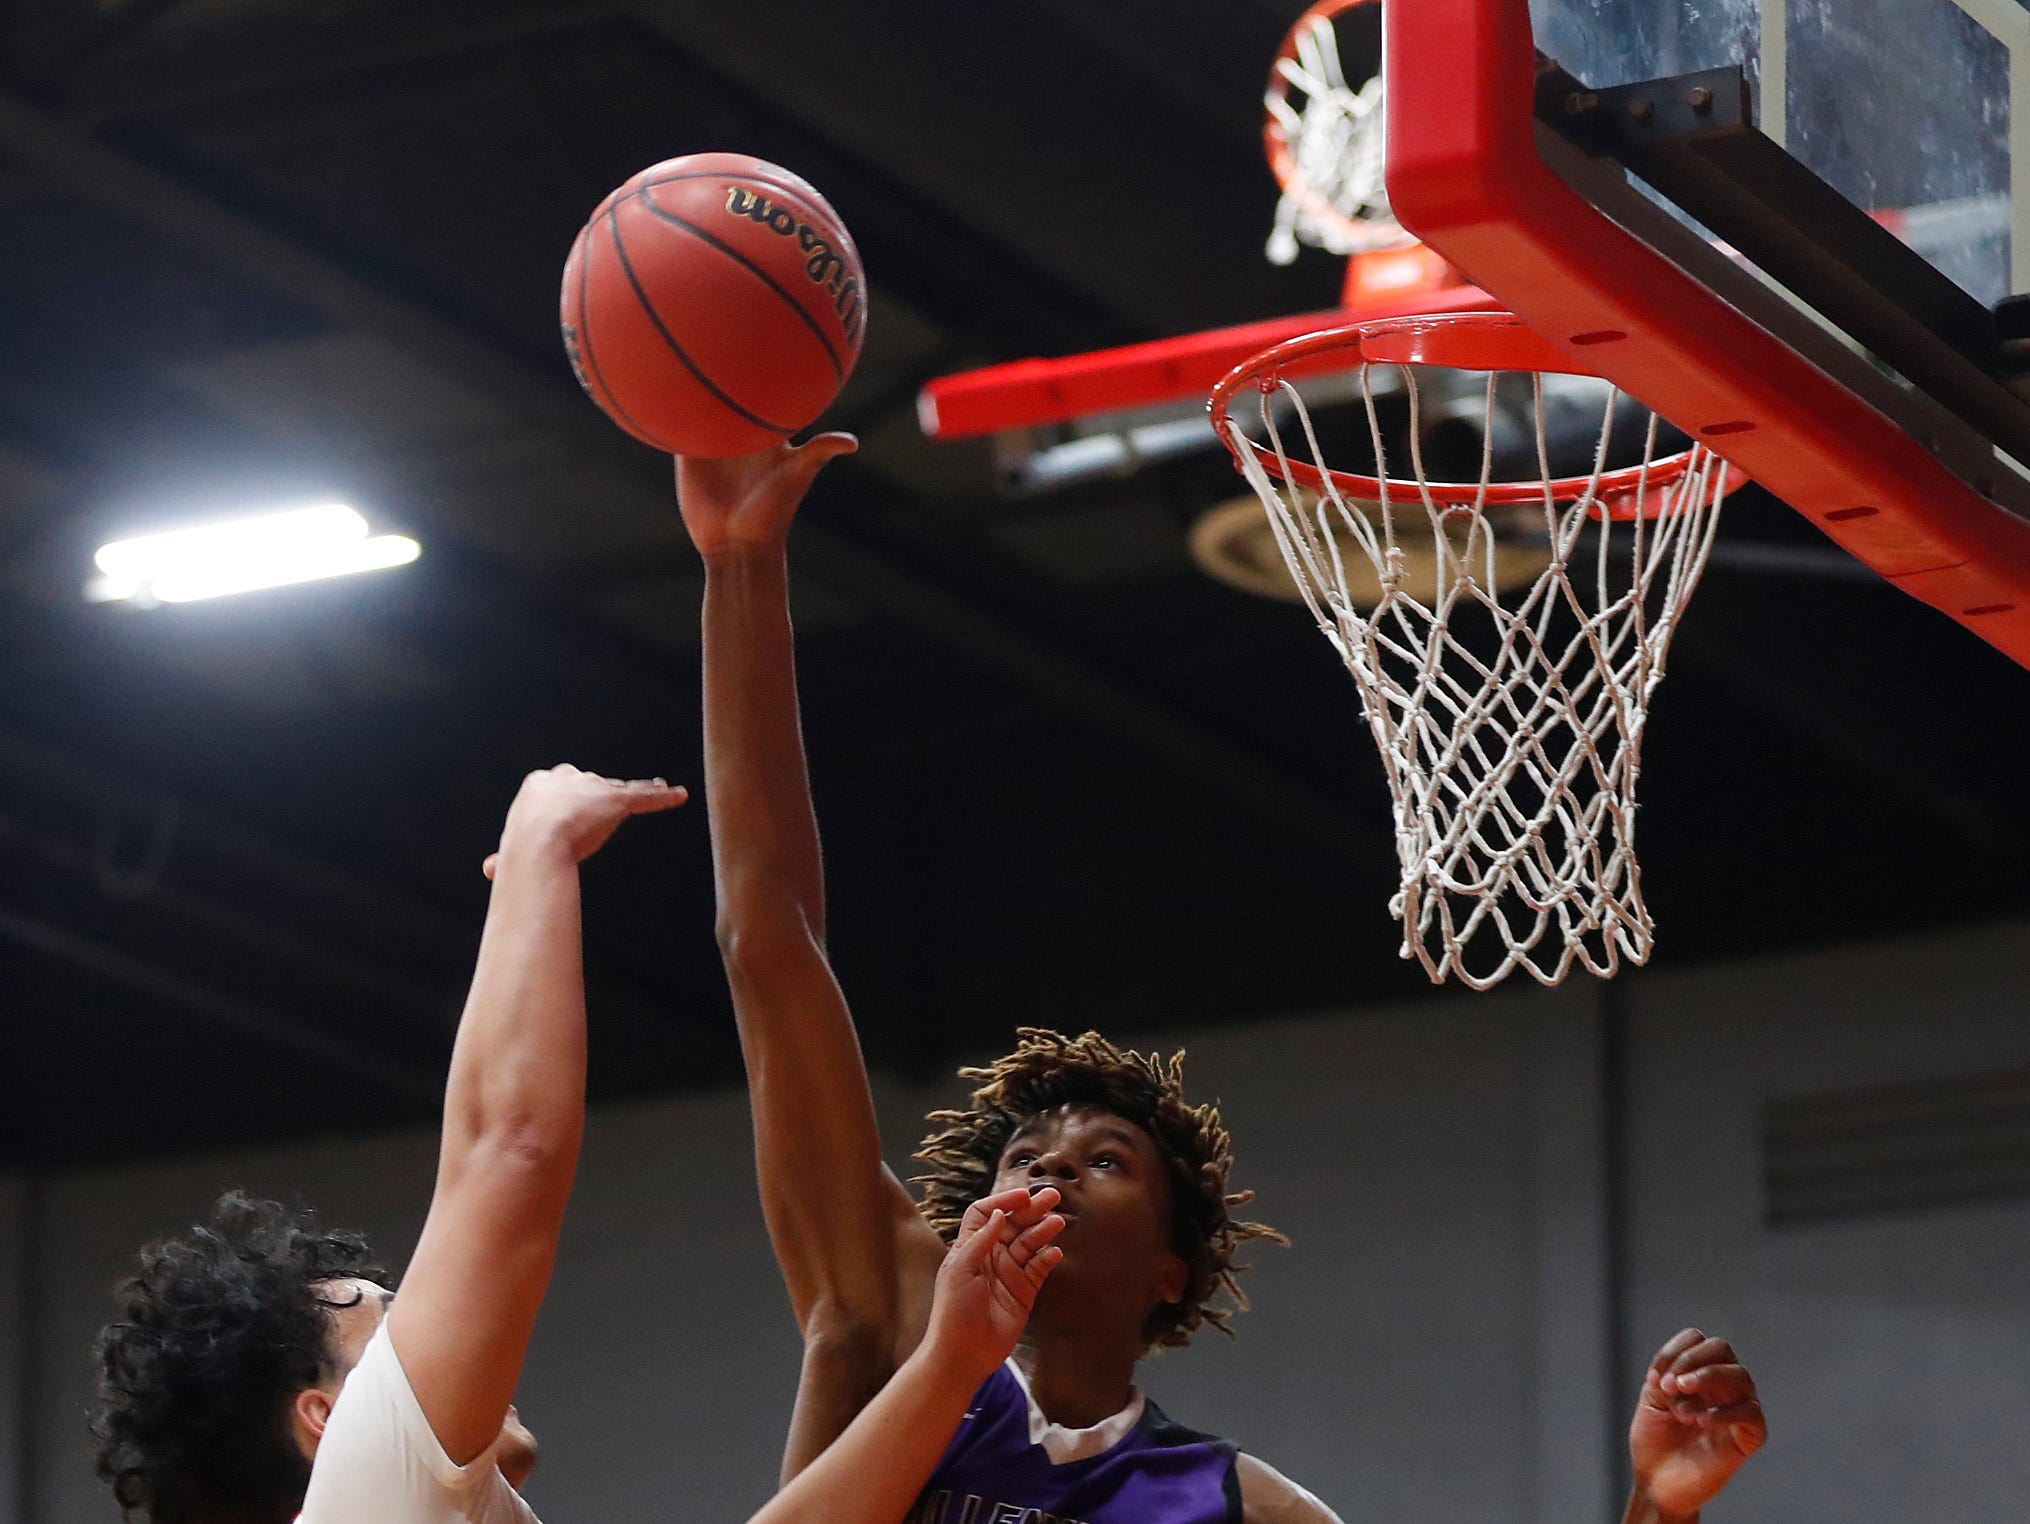 Millennium's DaRon Holmes (23) blocks a shot Ironwood's Jordan Kafoa (12) during the second half of the 5A state quarterfinal game at Ironwood High School in Glendale, Ariz. on February 15, 2019.